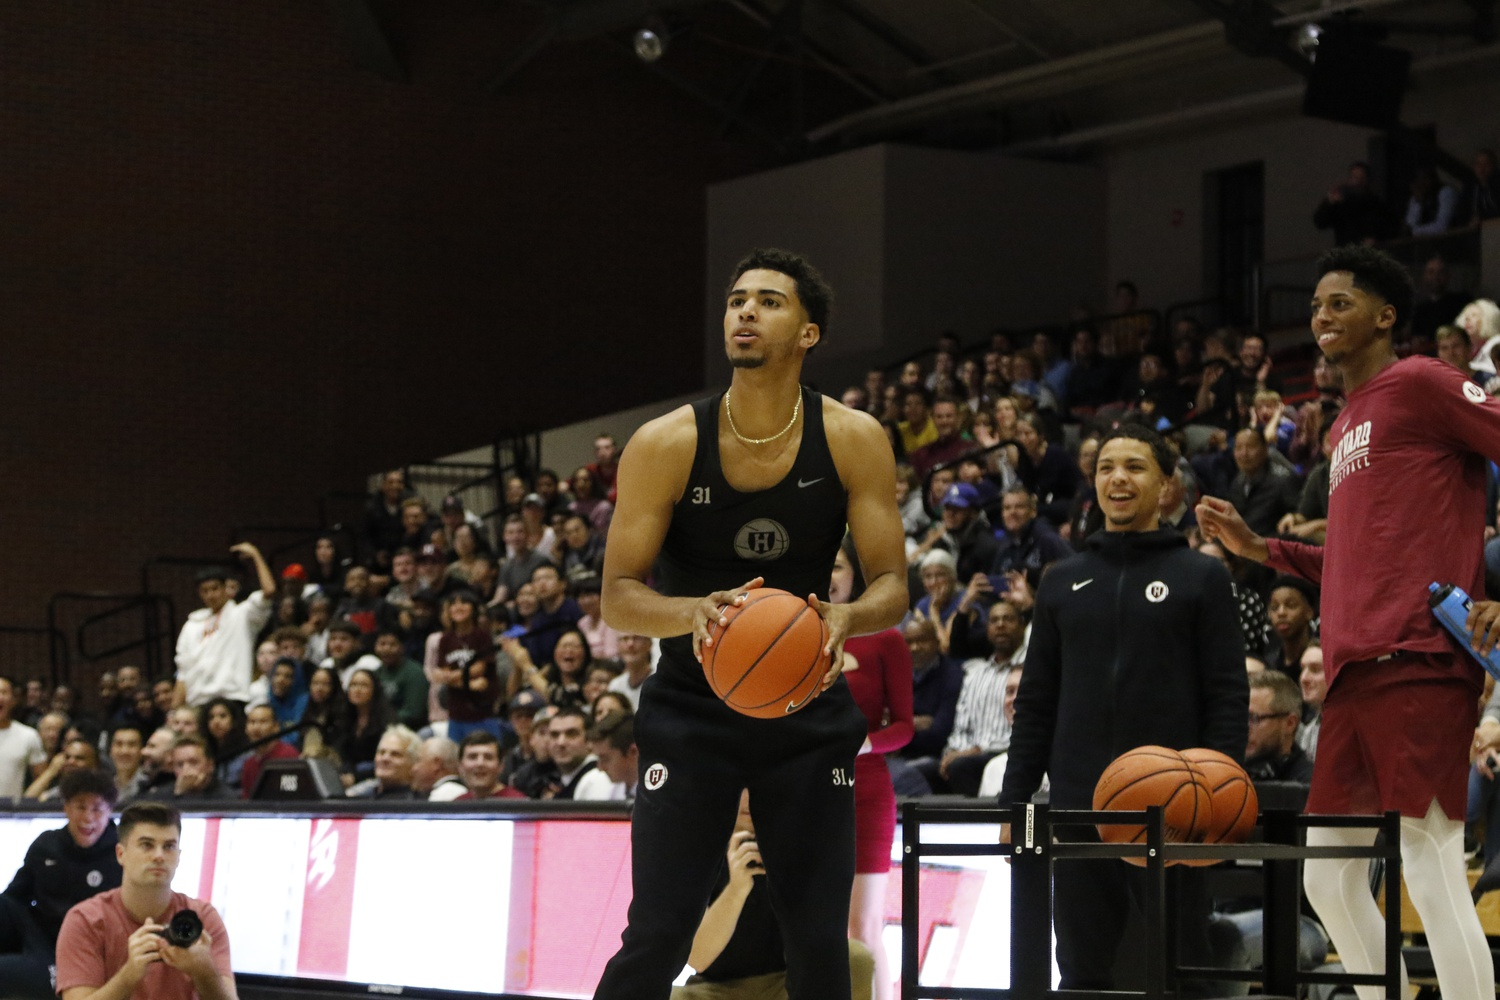 On Saturday night, senior Seth Towns announced his commitment to play at Ohio State University as a graduate transfer